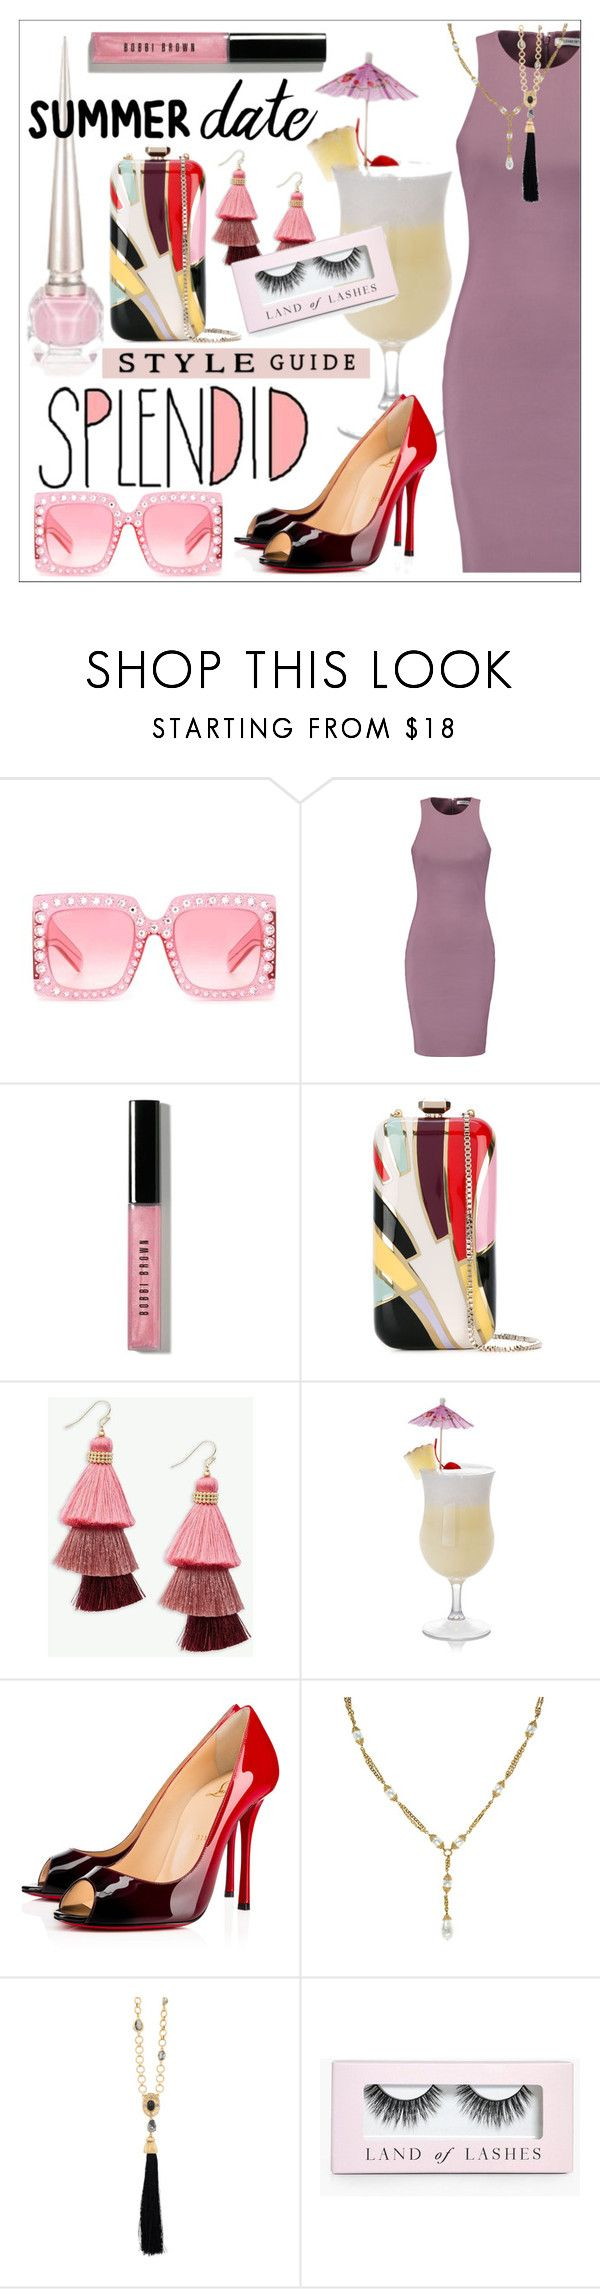 """""""Smokin' Hot * Summer Date"""" by calamity-jane-always ❤ liked on Polyvore featuring Gucci, Elizabeth and James, Bobbi Brown Cosmetics, Elie Saab, Panacea, Chloé, Christian Louboutin, Chanel, Oscar de la Renta and Boohoo"""